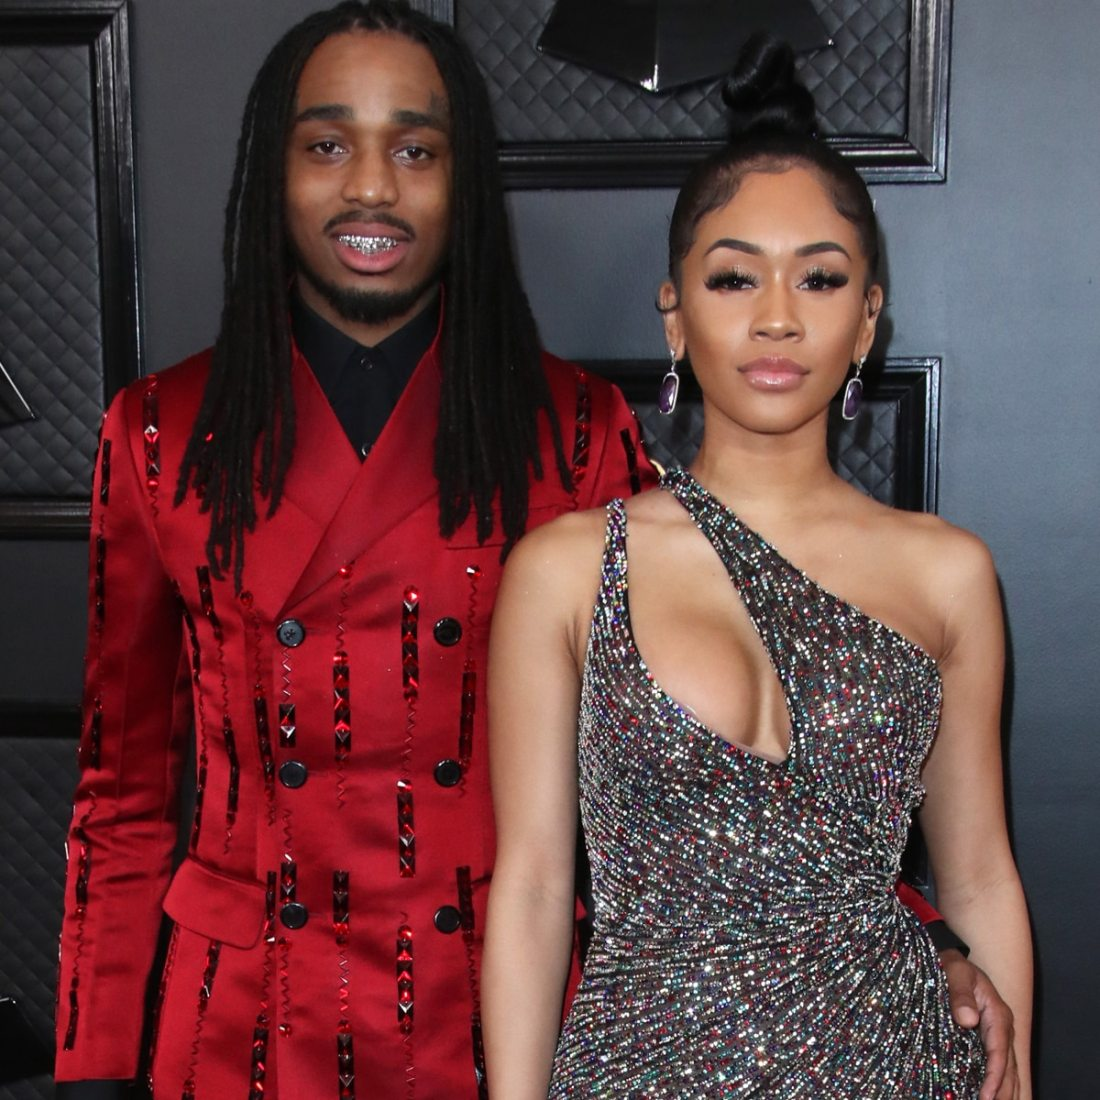 """Saweetie Talks About Her Breakup With Quavo In New Track """"See Saw"""""""